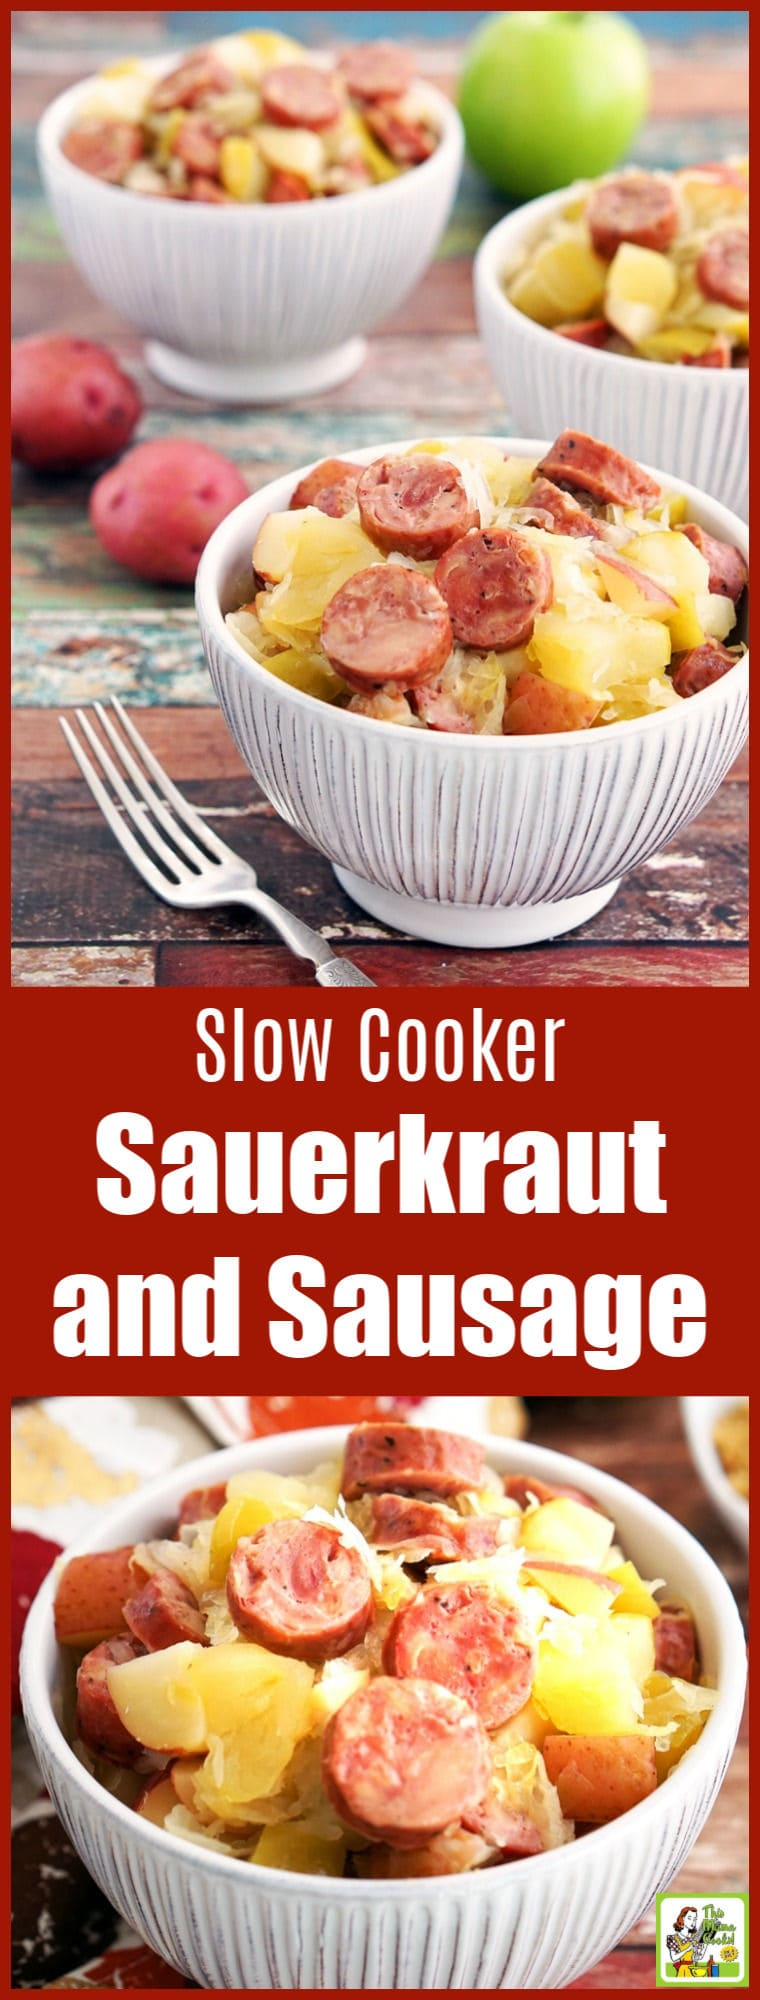 Looking for a gluten free Crock-Pot recipe? This Slow Cooker Sauerkraut and Sausage with Apples and Potatoes takes only 15 minutes to prepare! Makes a great party or potluck recipe, too. #slowcooker #crockpot #glutenfree #glutenfreerecipes #dinner #easydinner #recipe #sausage #apples #potatoes